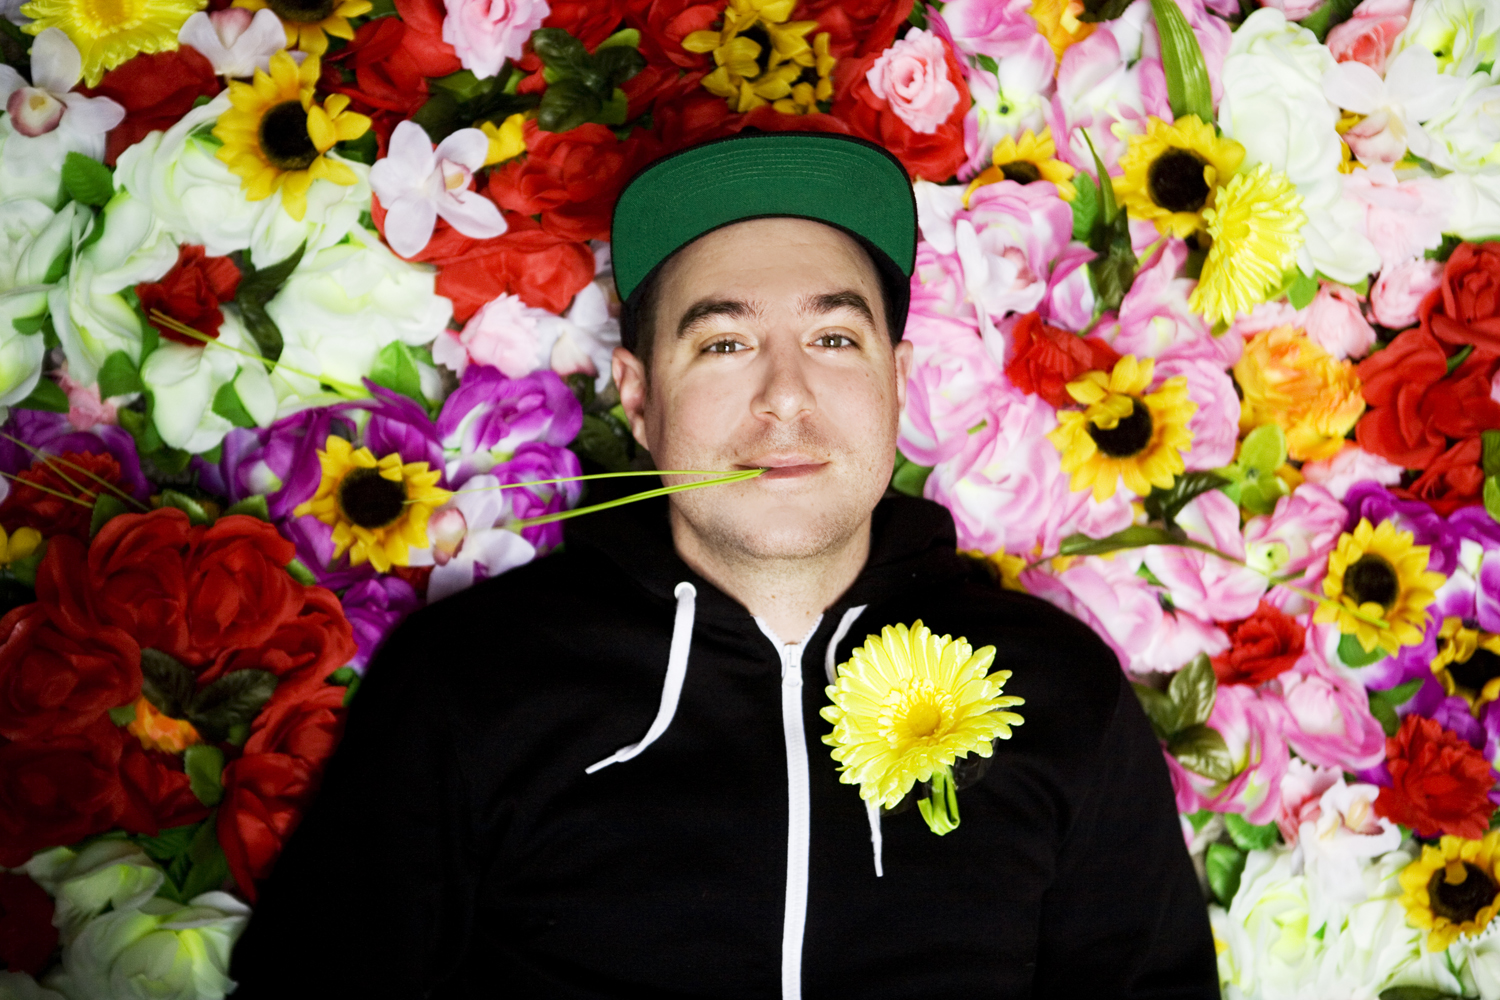 Justin Martin's Latest Album Is Coming Out On 4/20